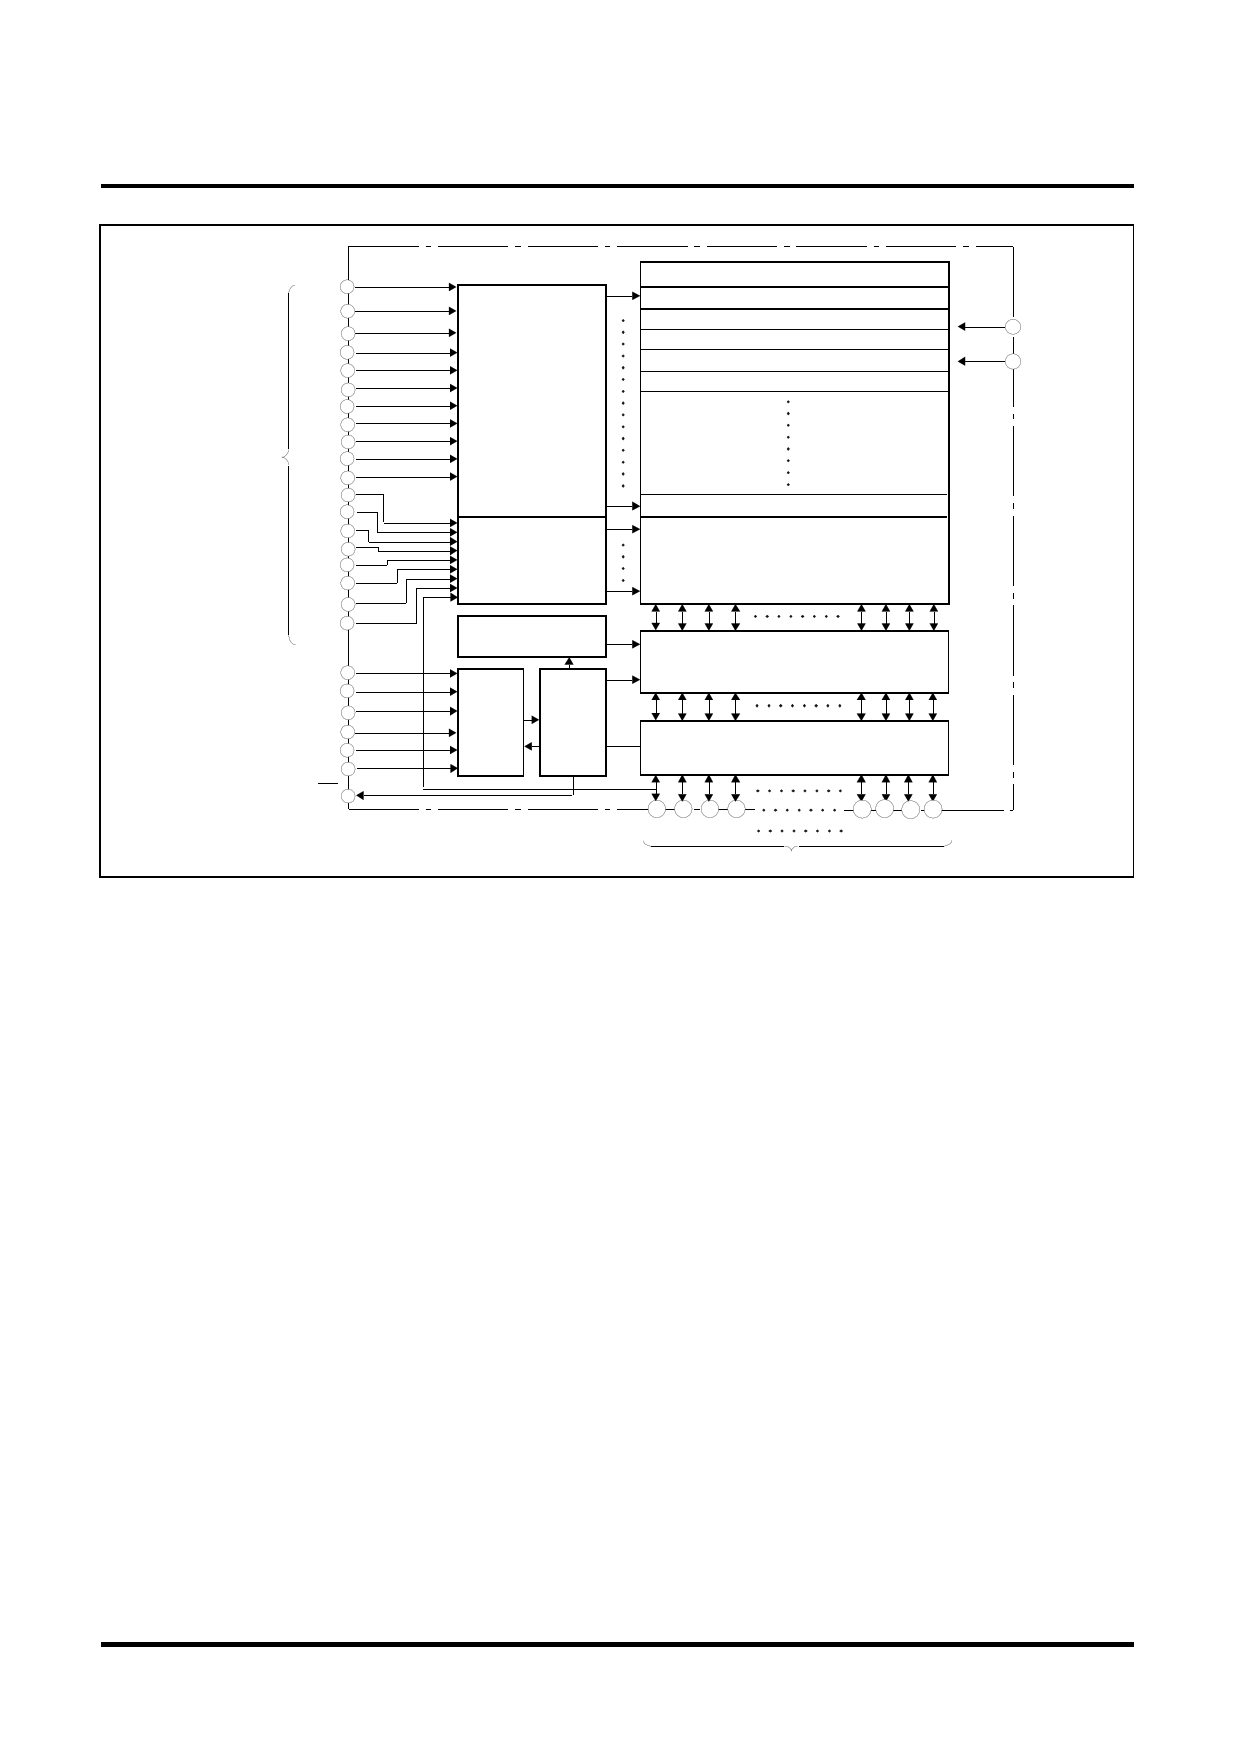 M5M29FB800RV-10 pdf, schematic